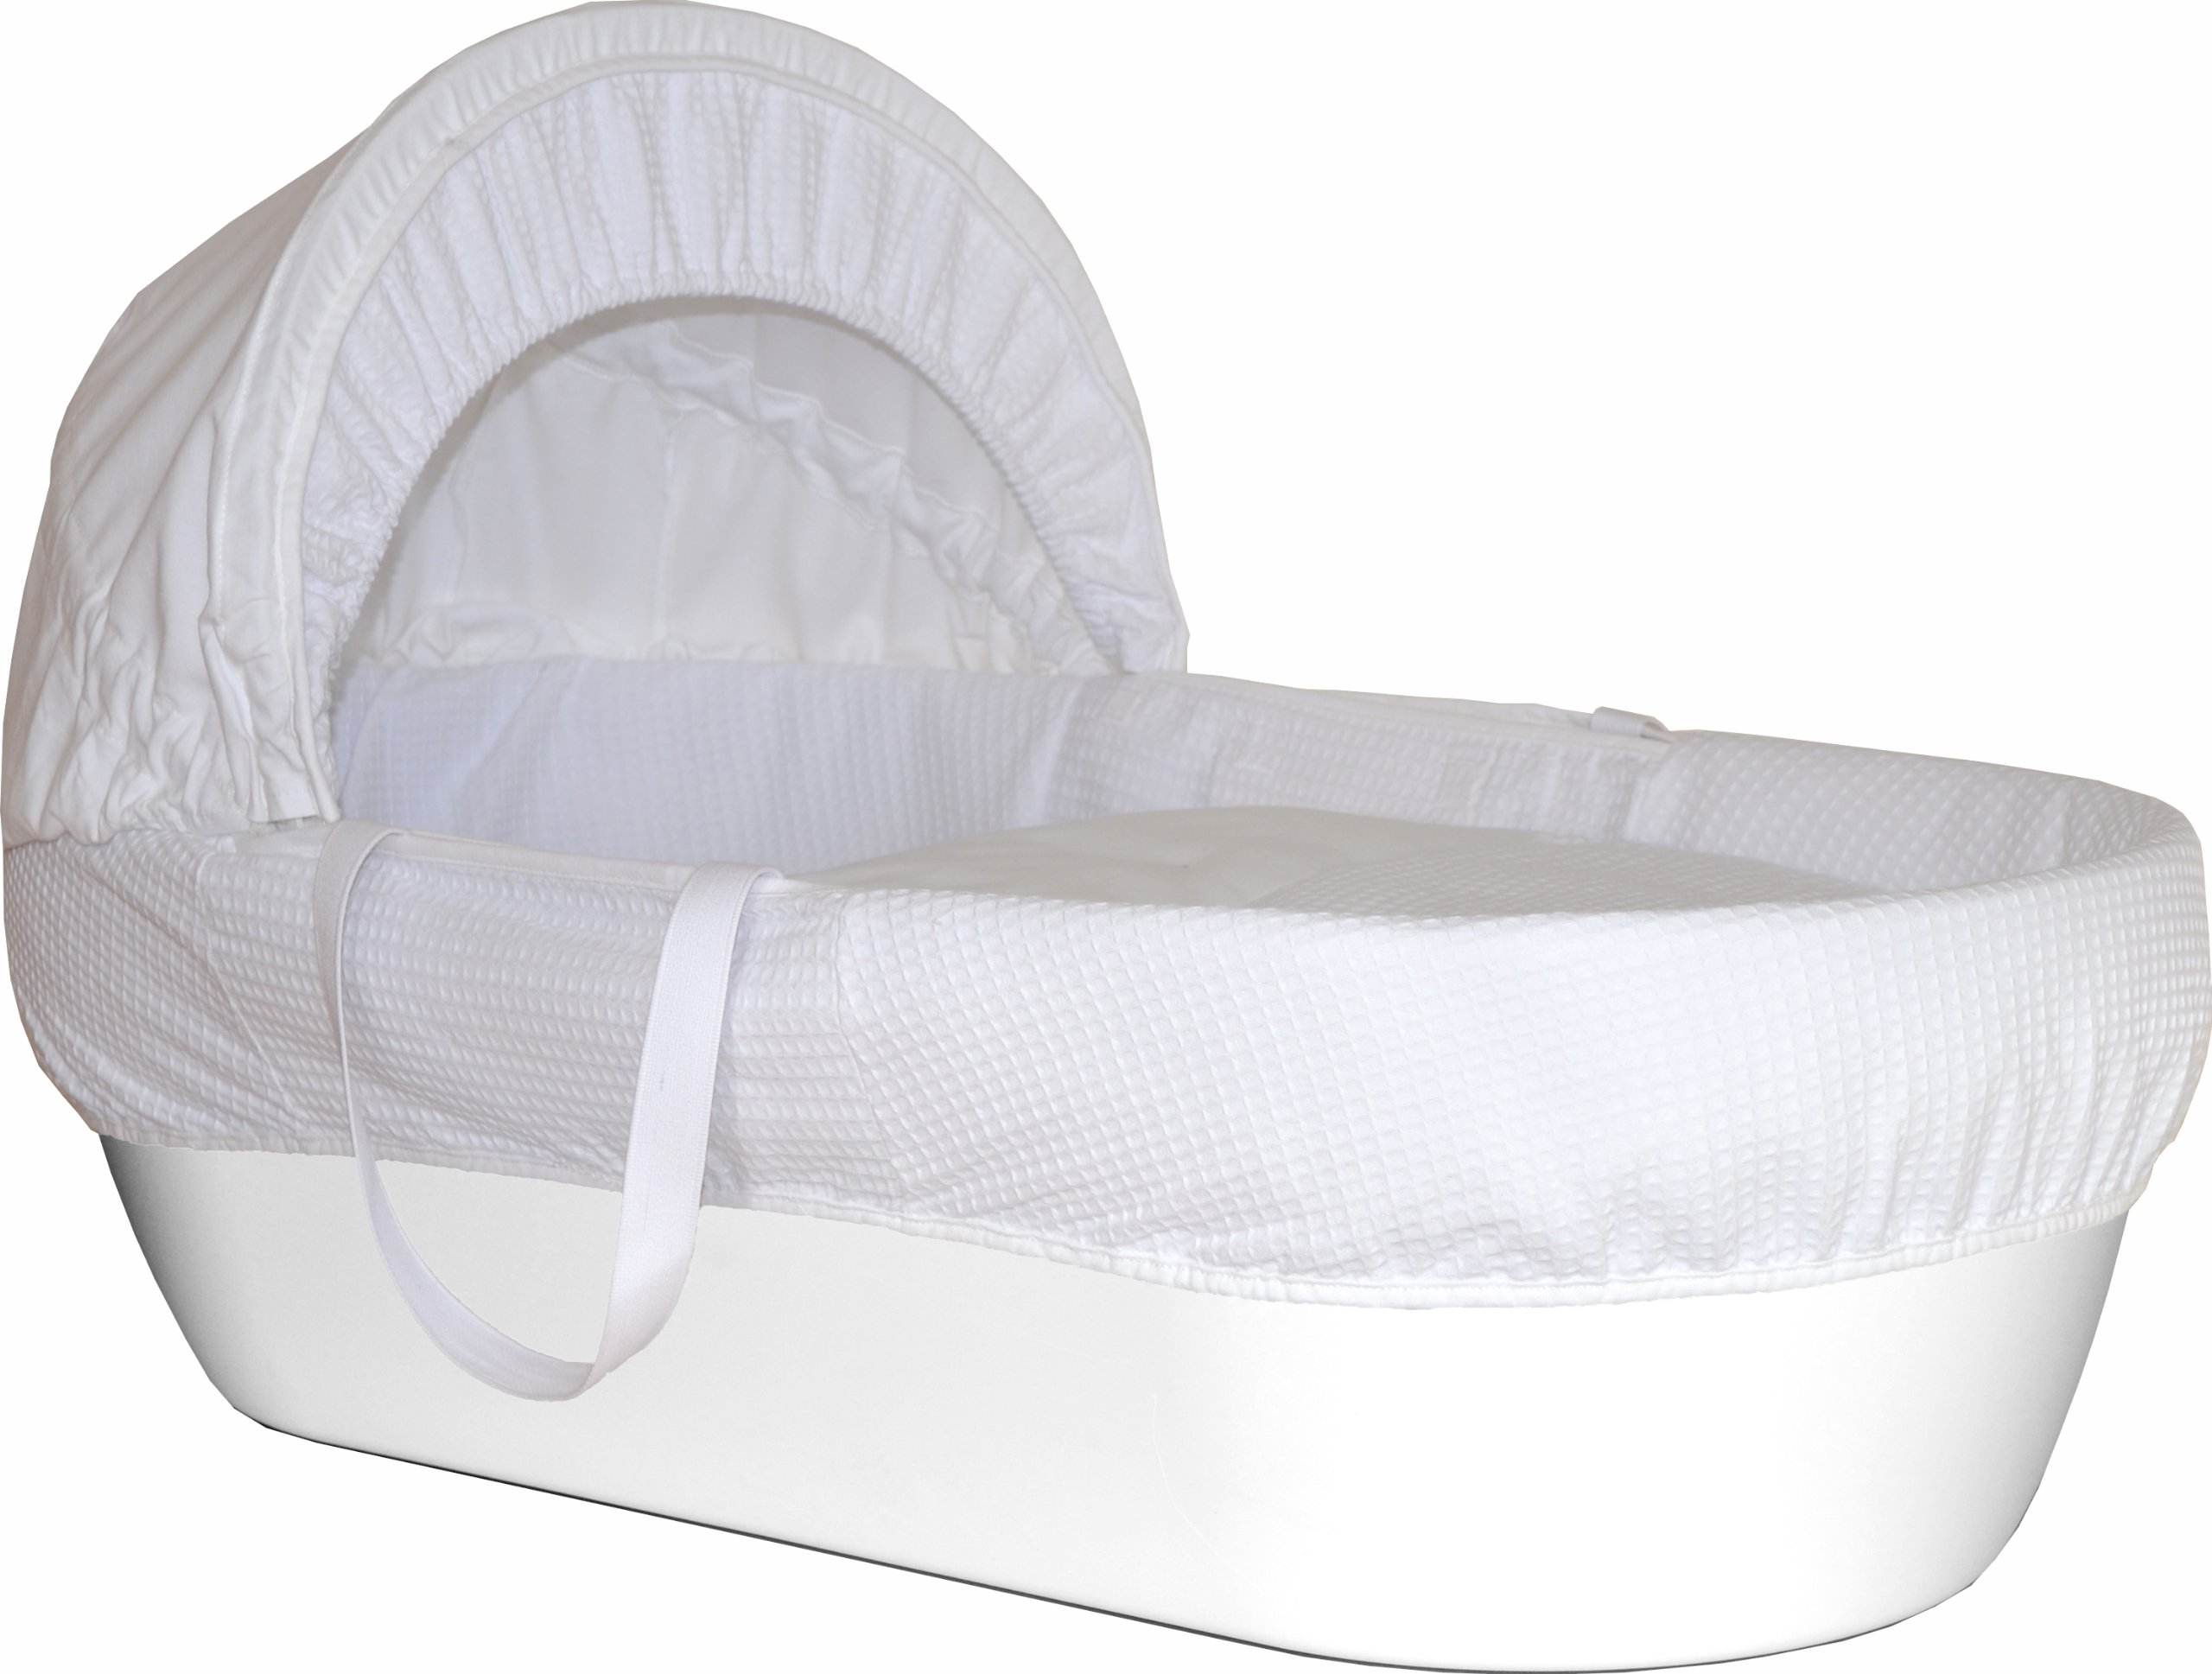 Shnuggle Moses Basket with White Waffle Cotton Dressing, Hood and Mattress - White Basket  Shnuggle Classic Moses Basket with stay up hood Hypoallergenic and easy to clean Super strong and long lasting 1